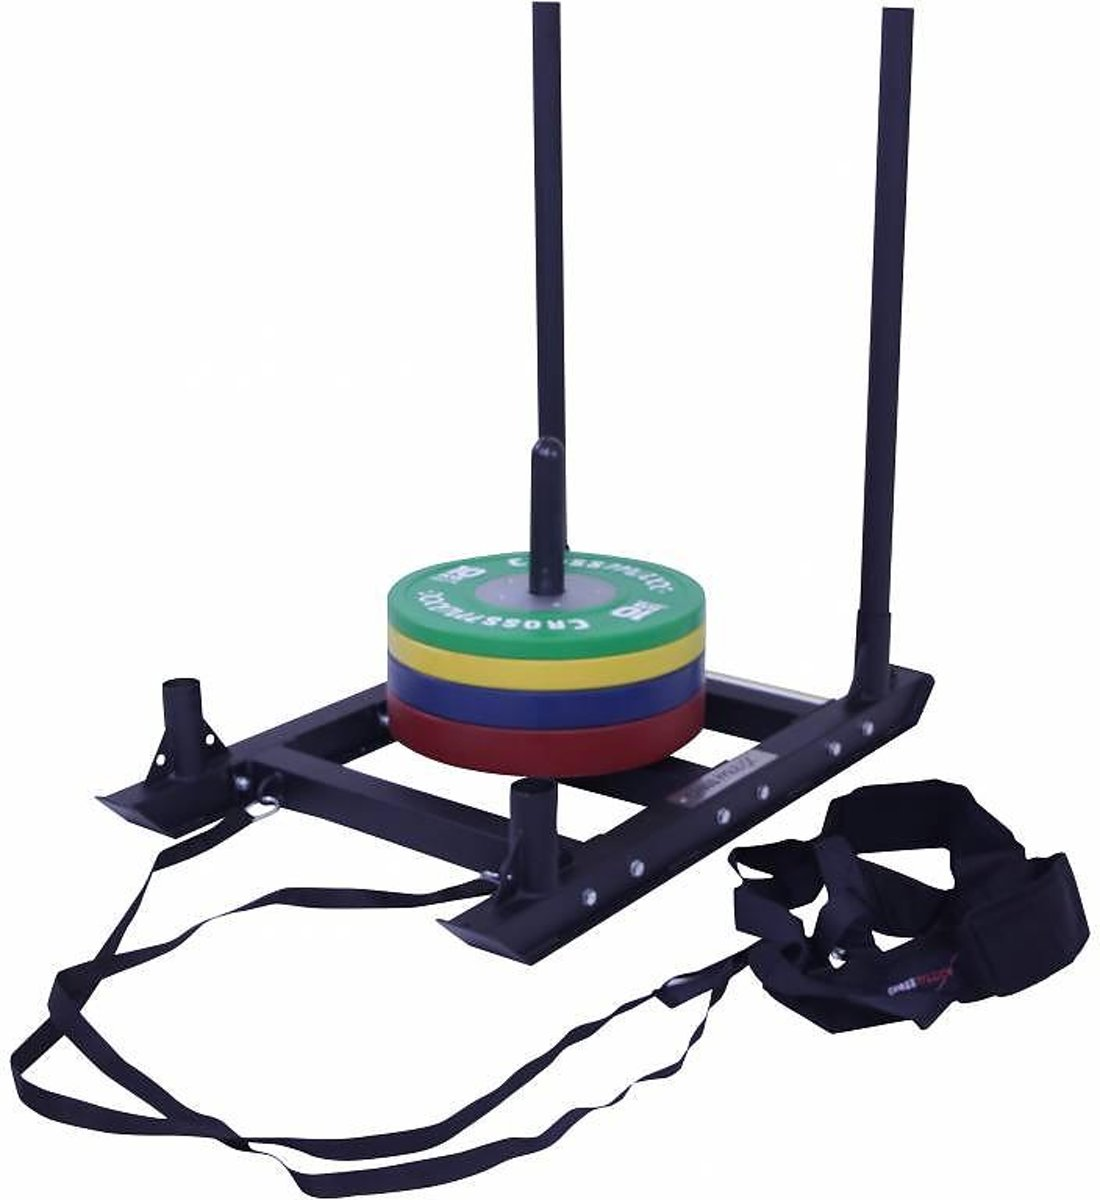 Power sled with harness (black)